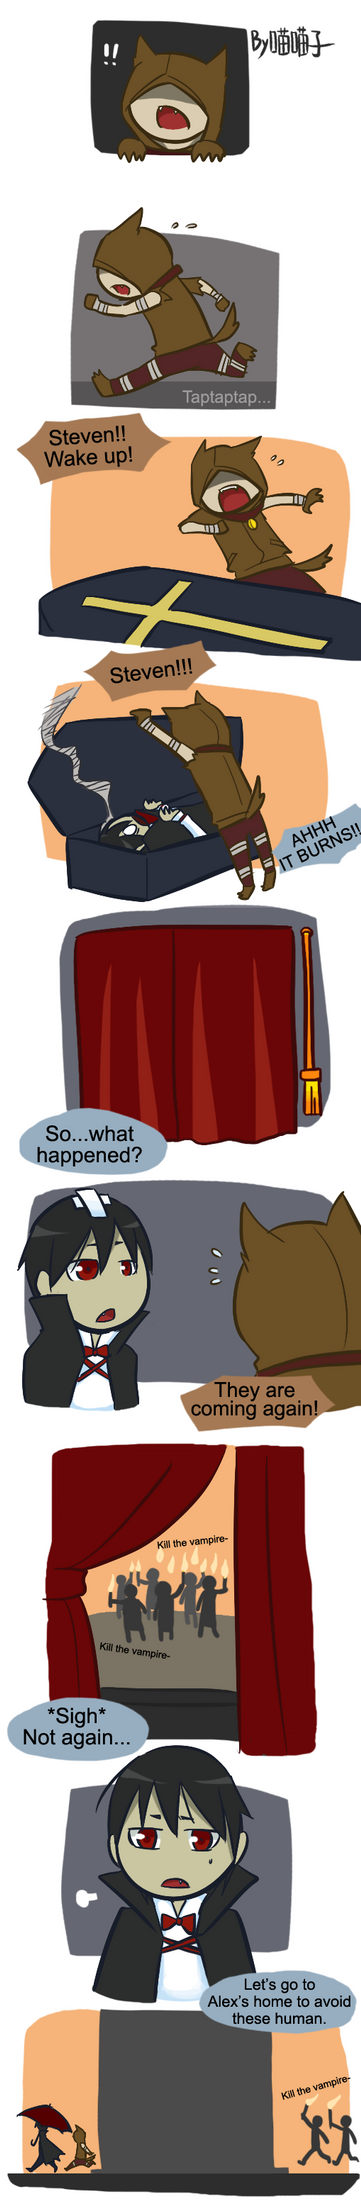 Halloween special comic 01 by aulauly7